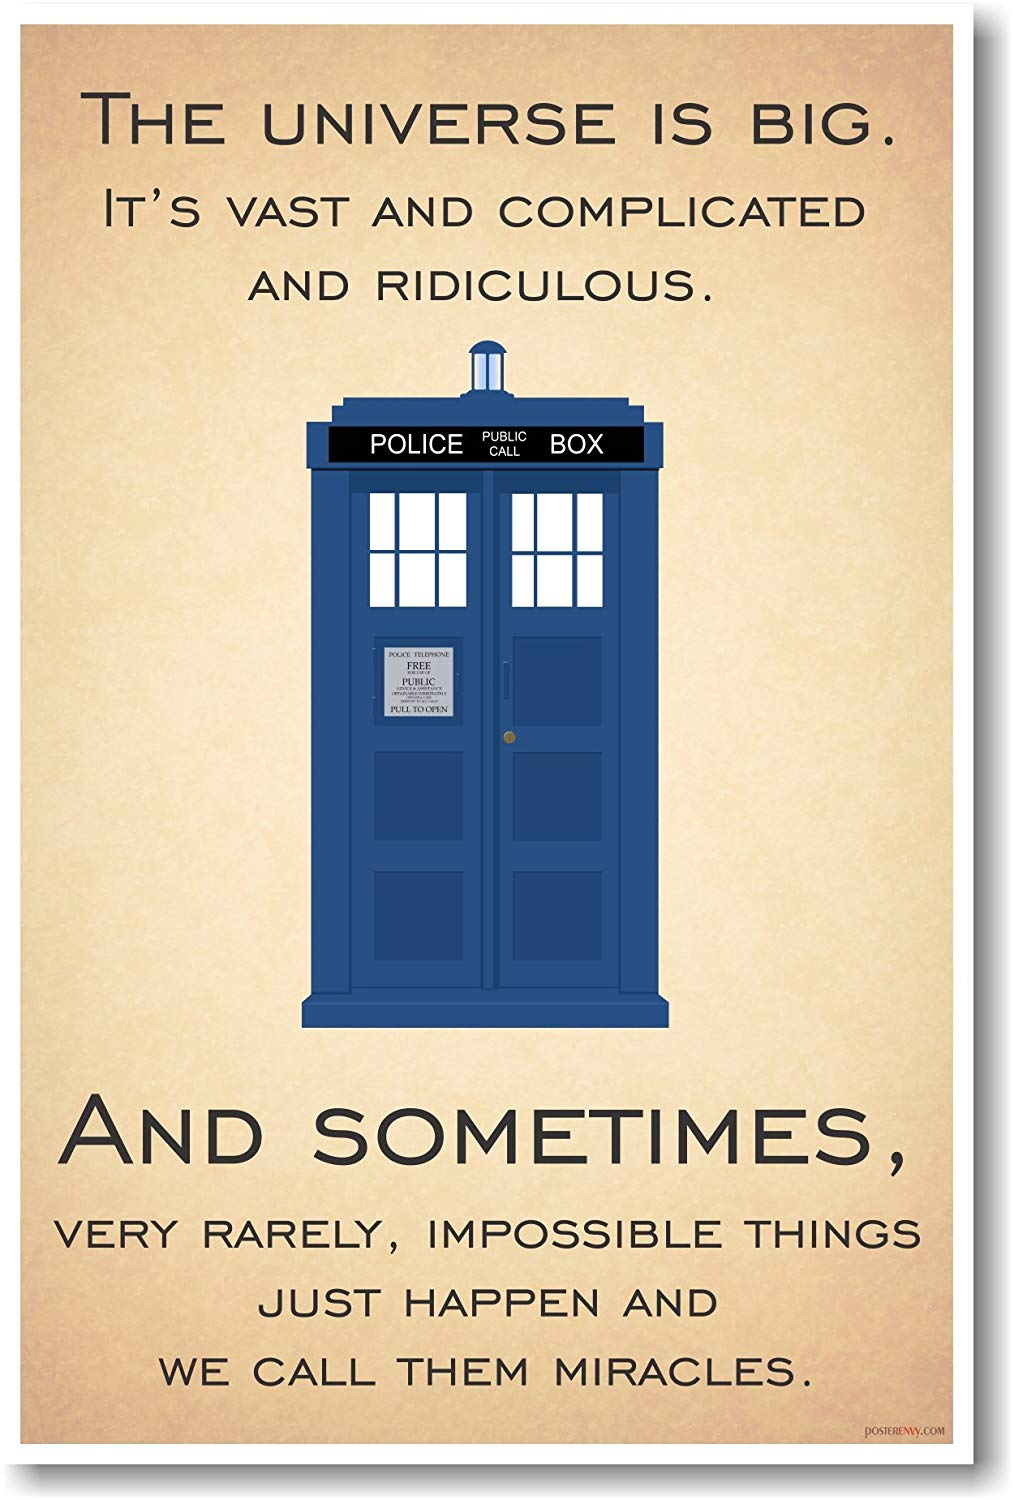 Doctor Who - Tardis - The Universe Is Big  The Universe Is Big. It's Vast And Complicated And Ridiculous.